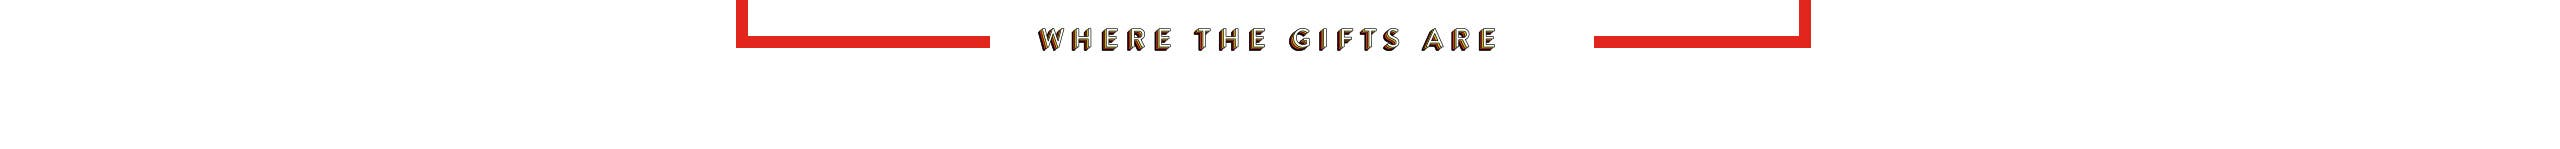 Where the gifts are. Christmas and holiday gifts.